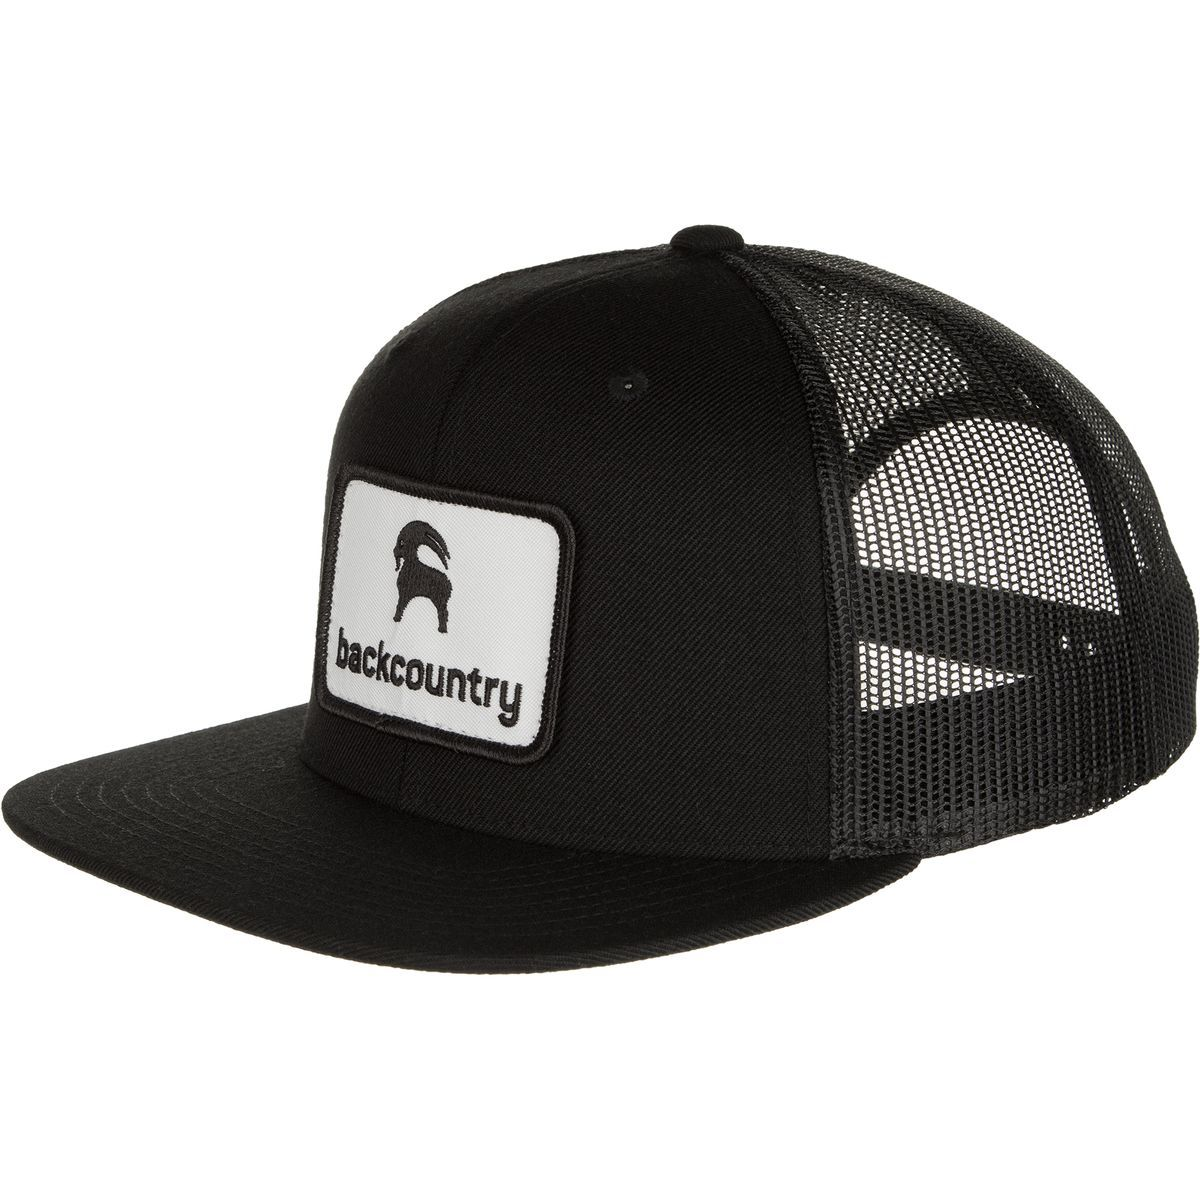 Backcountry Flat Brim Patch Trucker Hat Black Black One Size ... 72b8af5fd90c